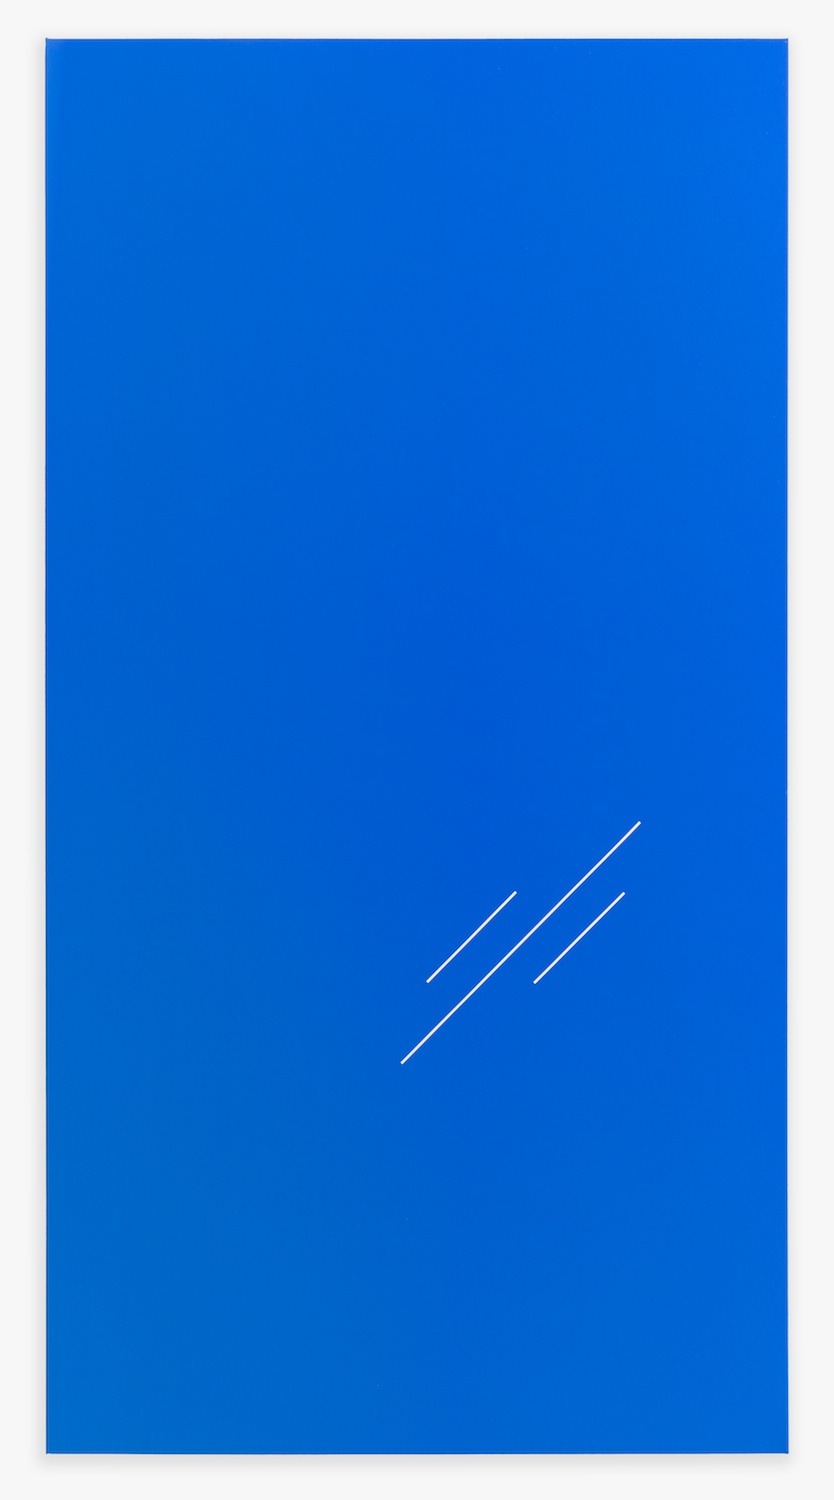 Paul Cowan  BCEAUSE THE SKY IS BULE  2013 Chroma-key Blue Paint On Canvas 78h x 41w in PC083